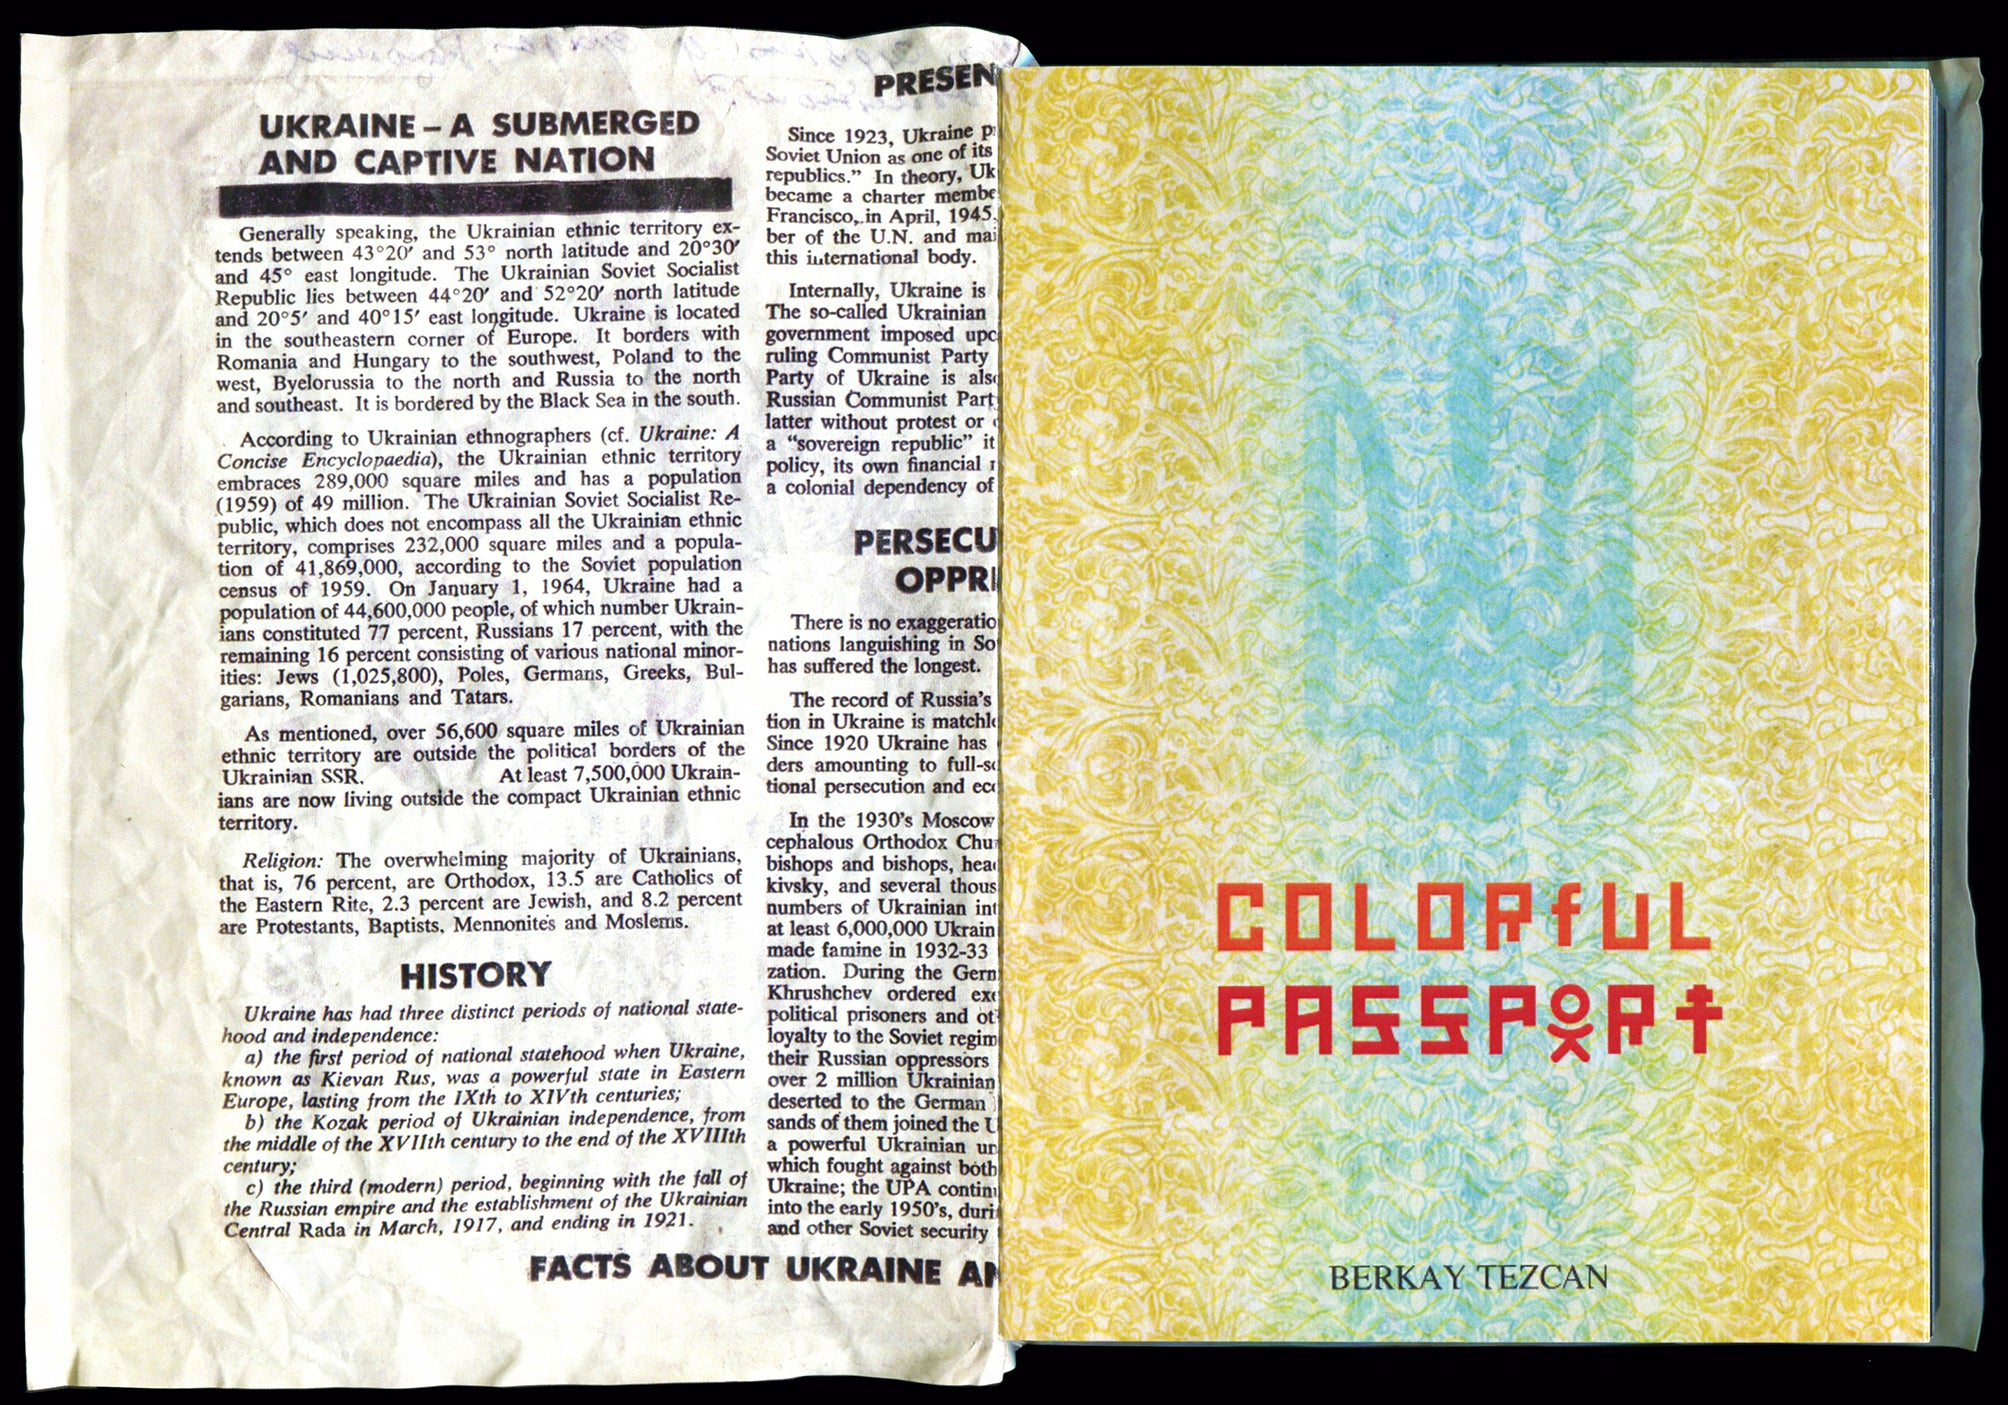 Colorful Passport